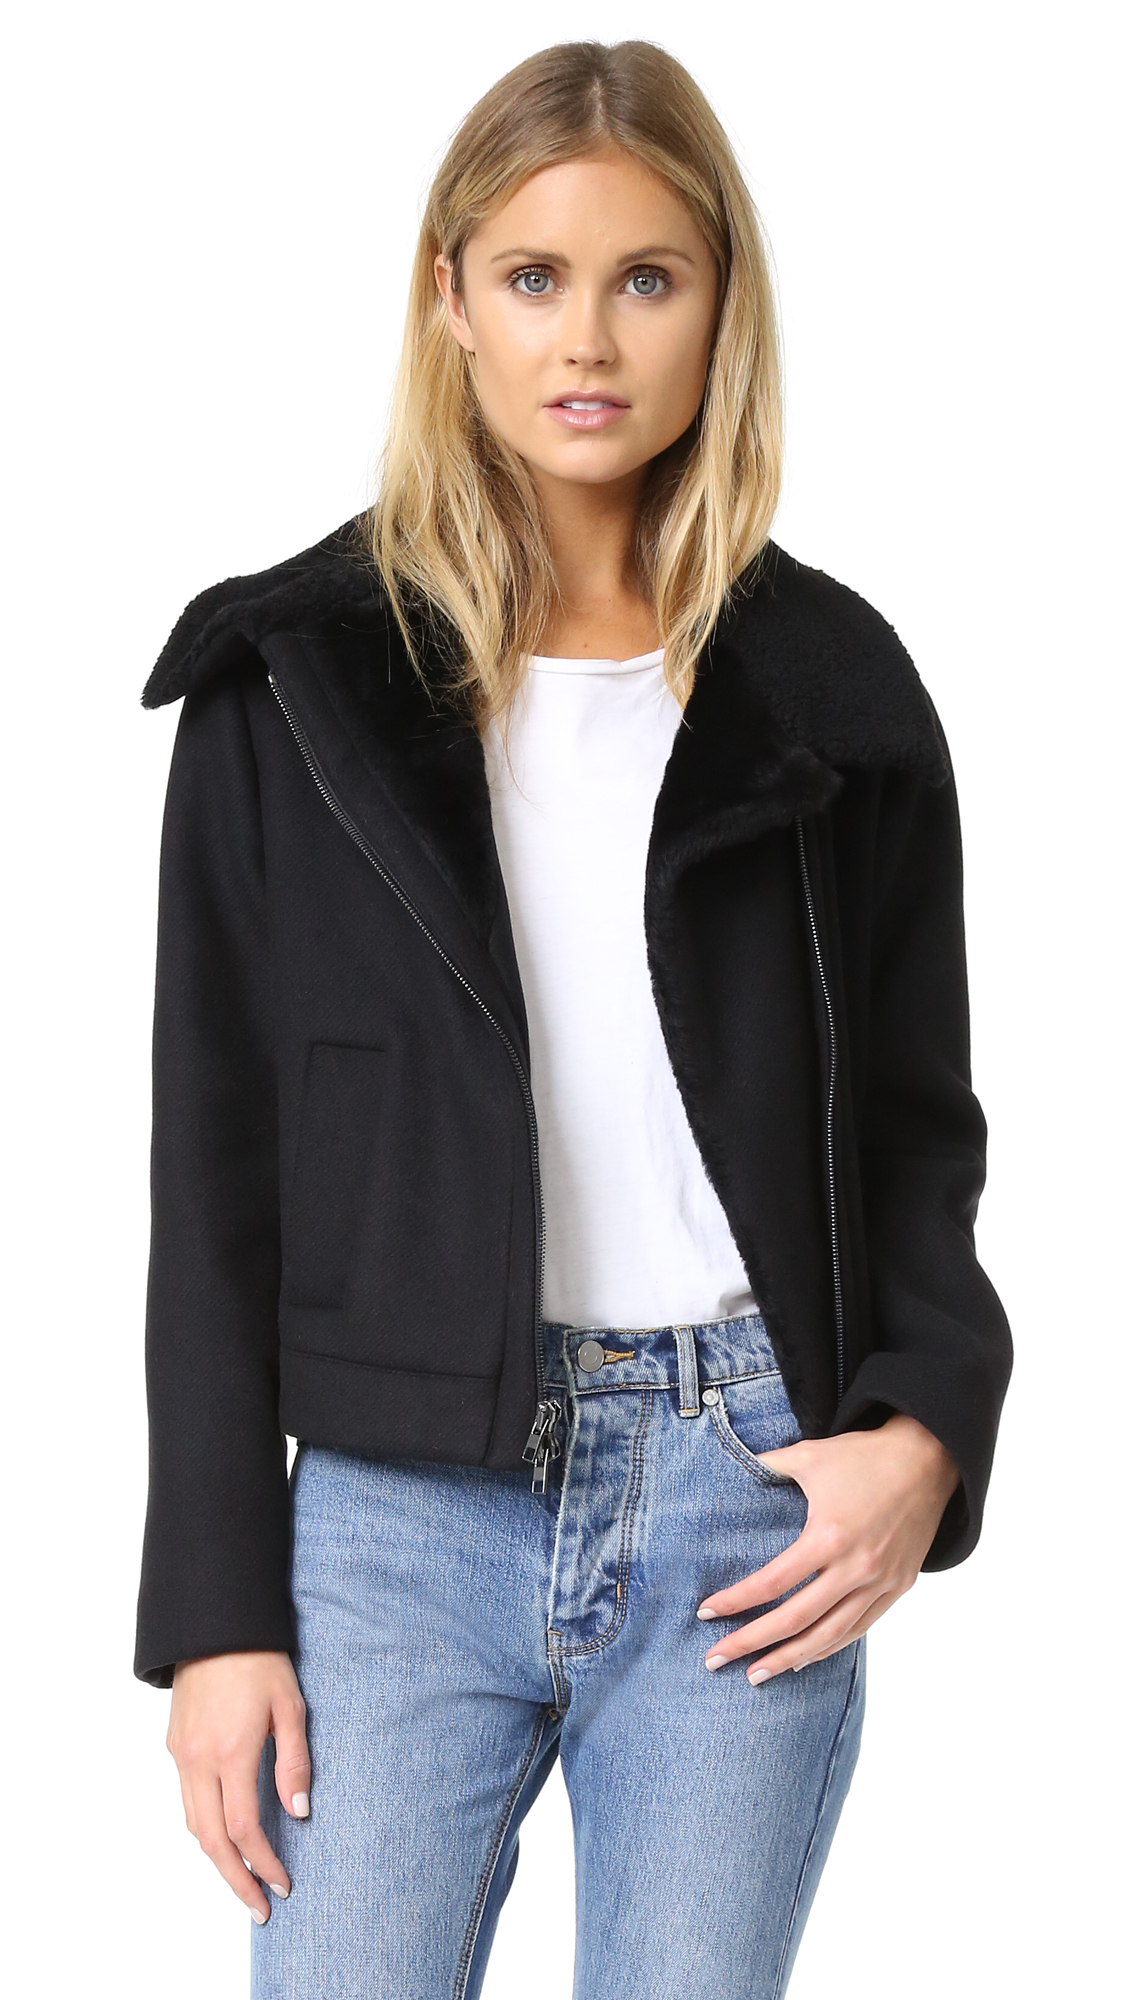 Tonal shearling trims the collar, placket, and pockets on this cozy Vince moto jacket. 2 way zip closure. Long sleeves. Lined. Fur: Dyed lamb shearling, from Spain. Fabric: Felt. Shell: 70% wool/20% polyamide/10% cashmere. Lining: 100% polyester. Dry clean.